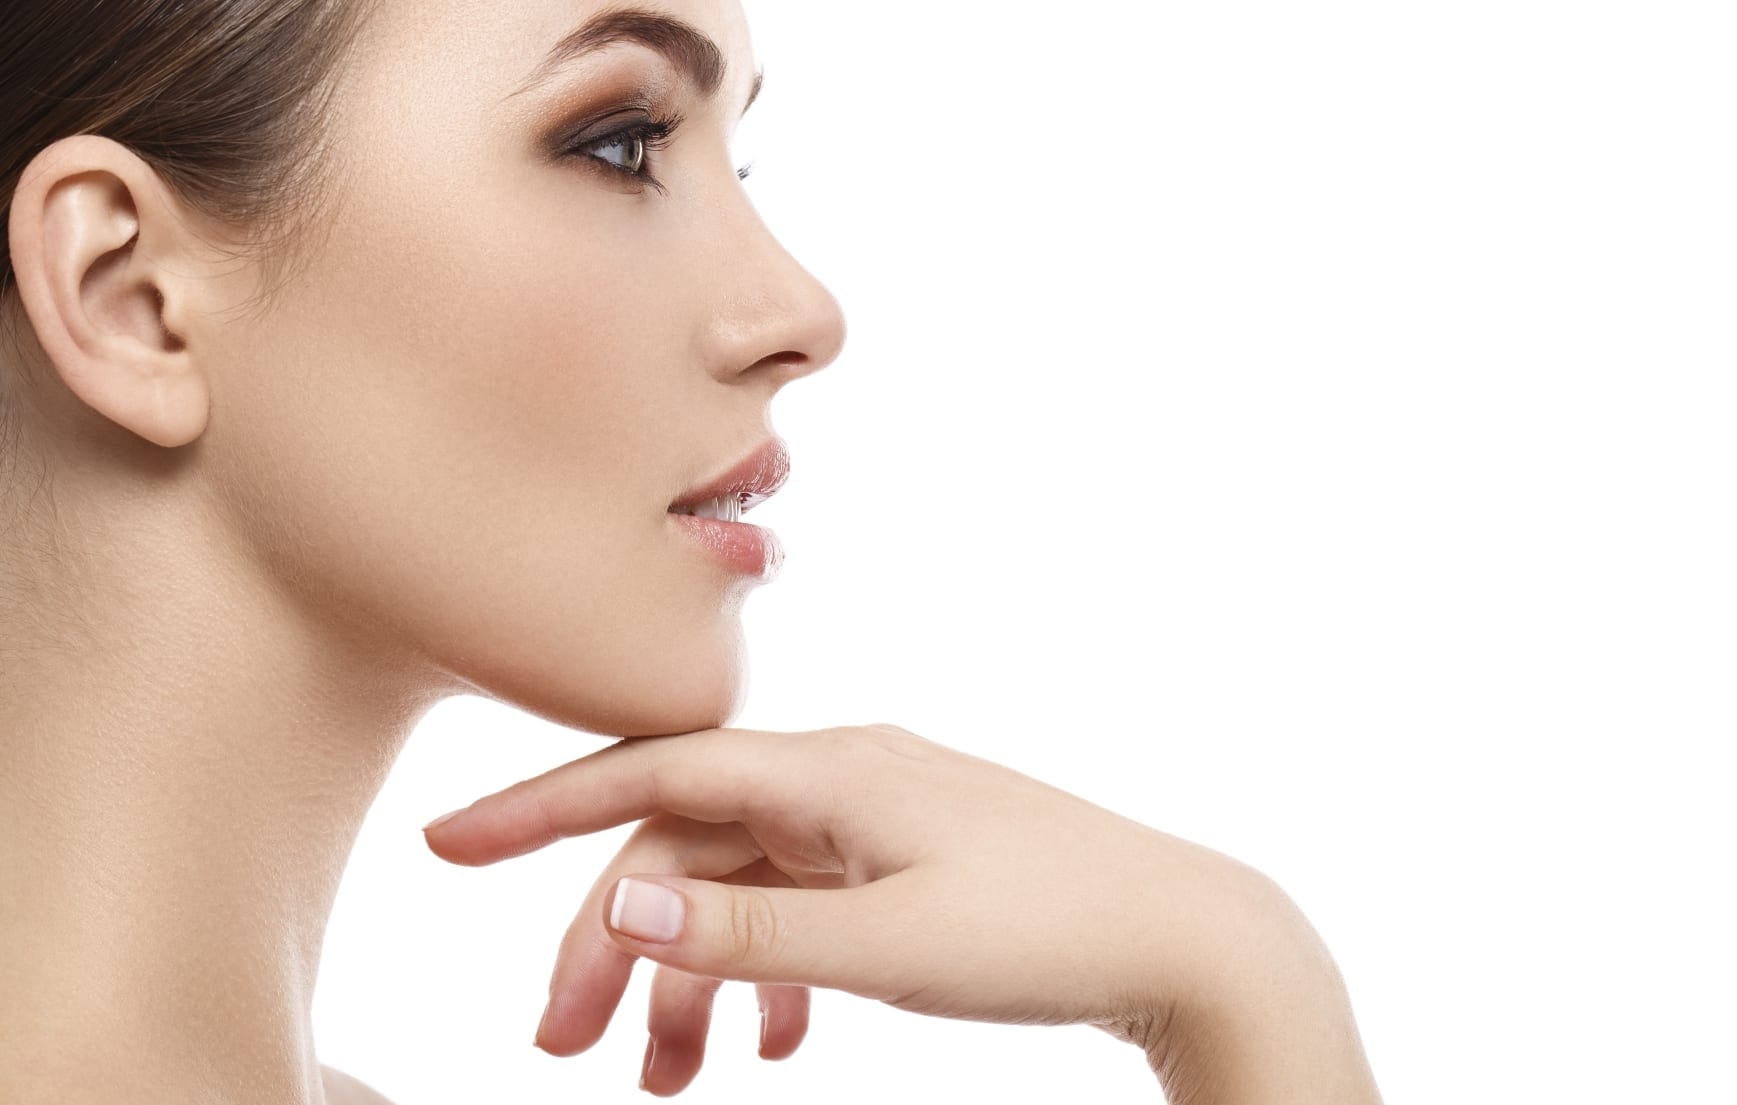 Attractive woman with beautiful face and chin